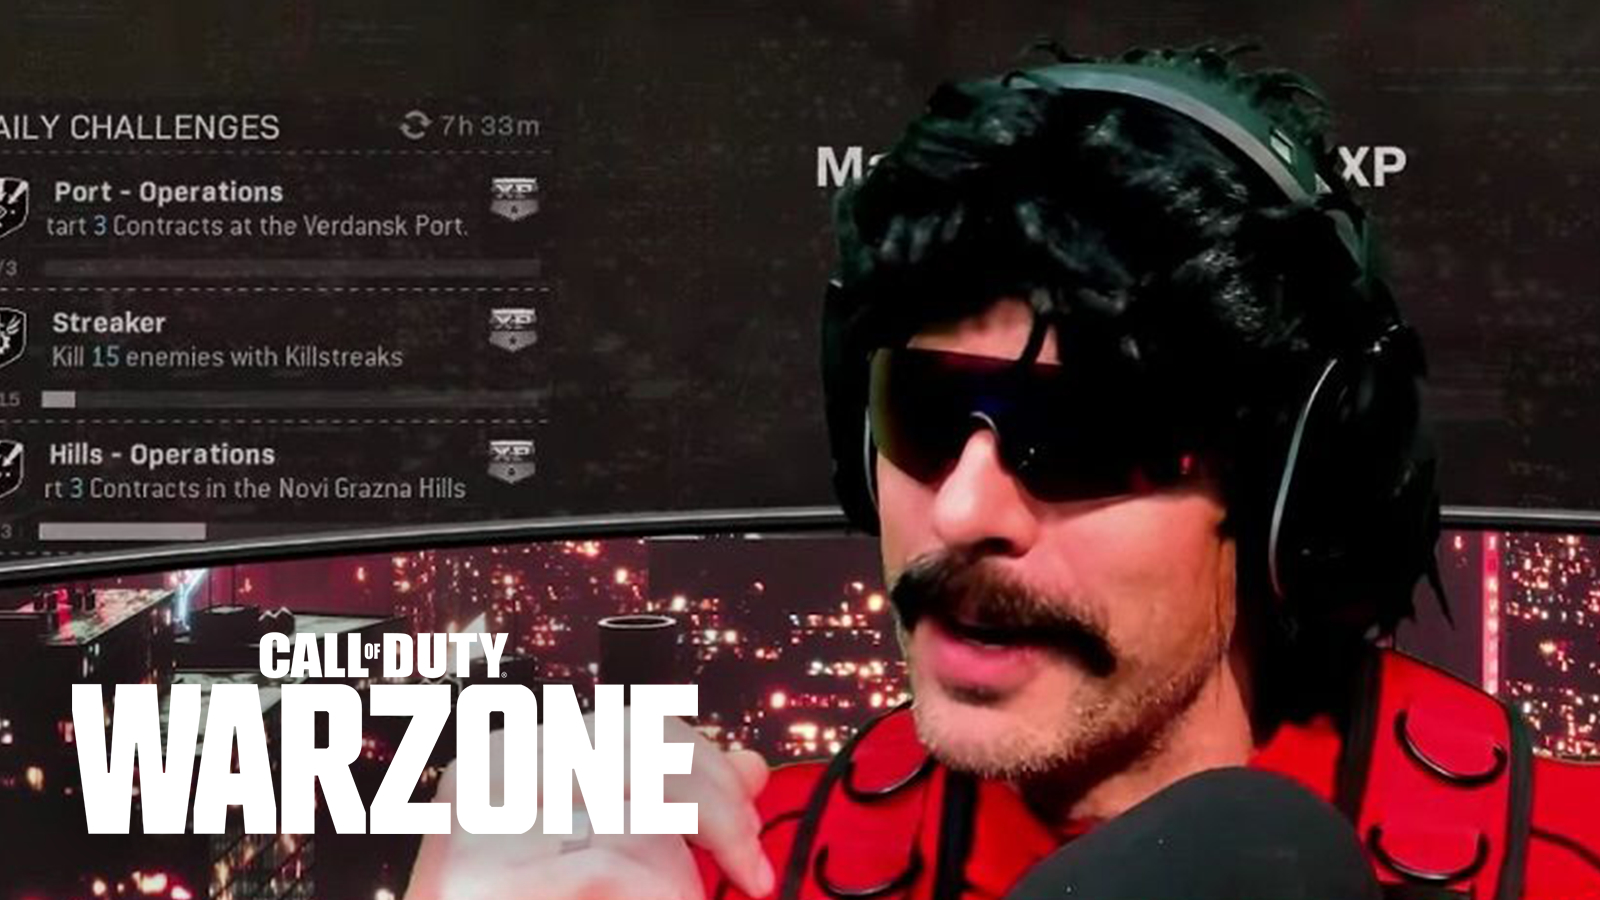 Dr Disrespect playing Call of Duty Warzone on YouTube.